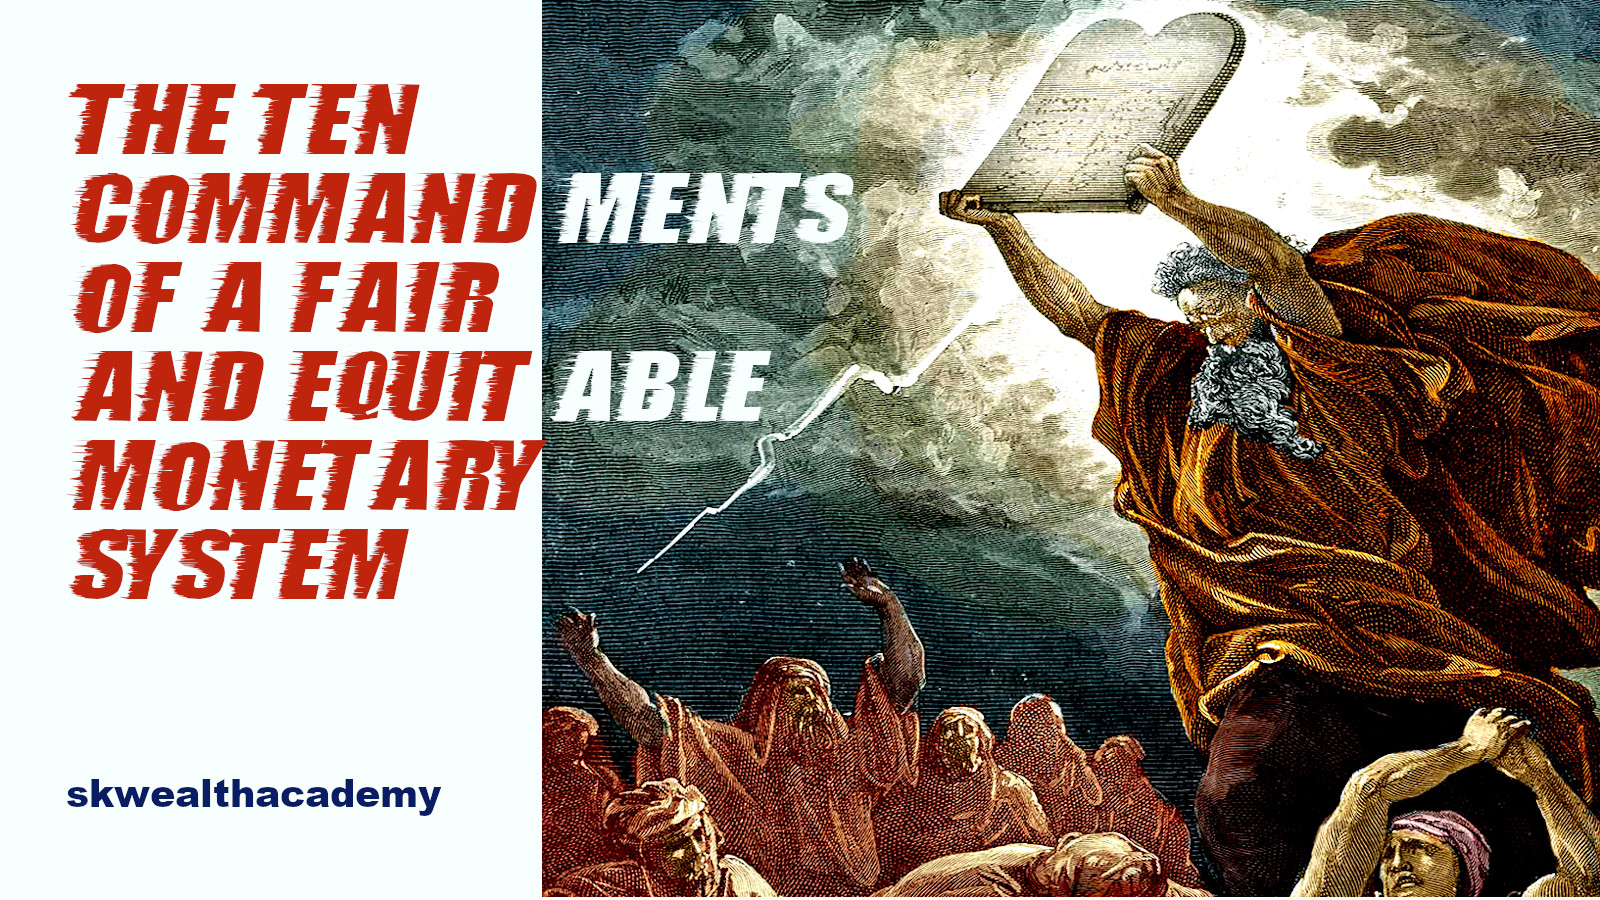 10 commandments of a fair and equitable monetary system